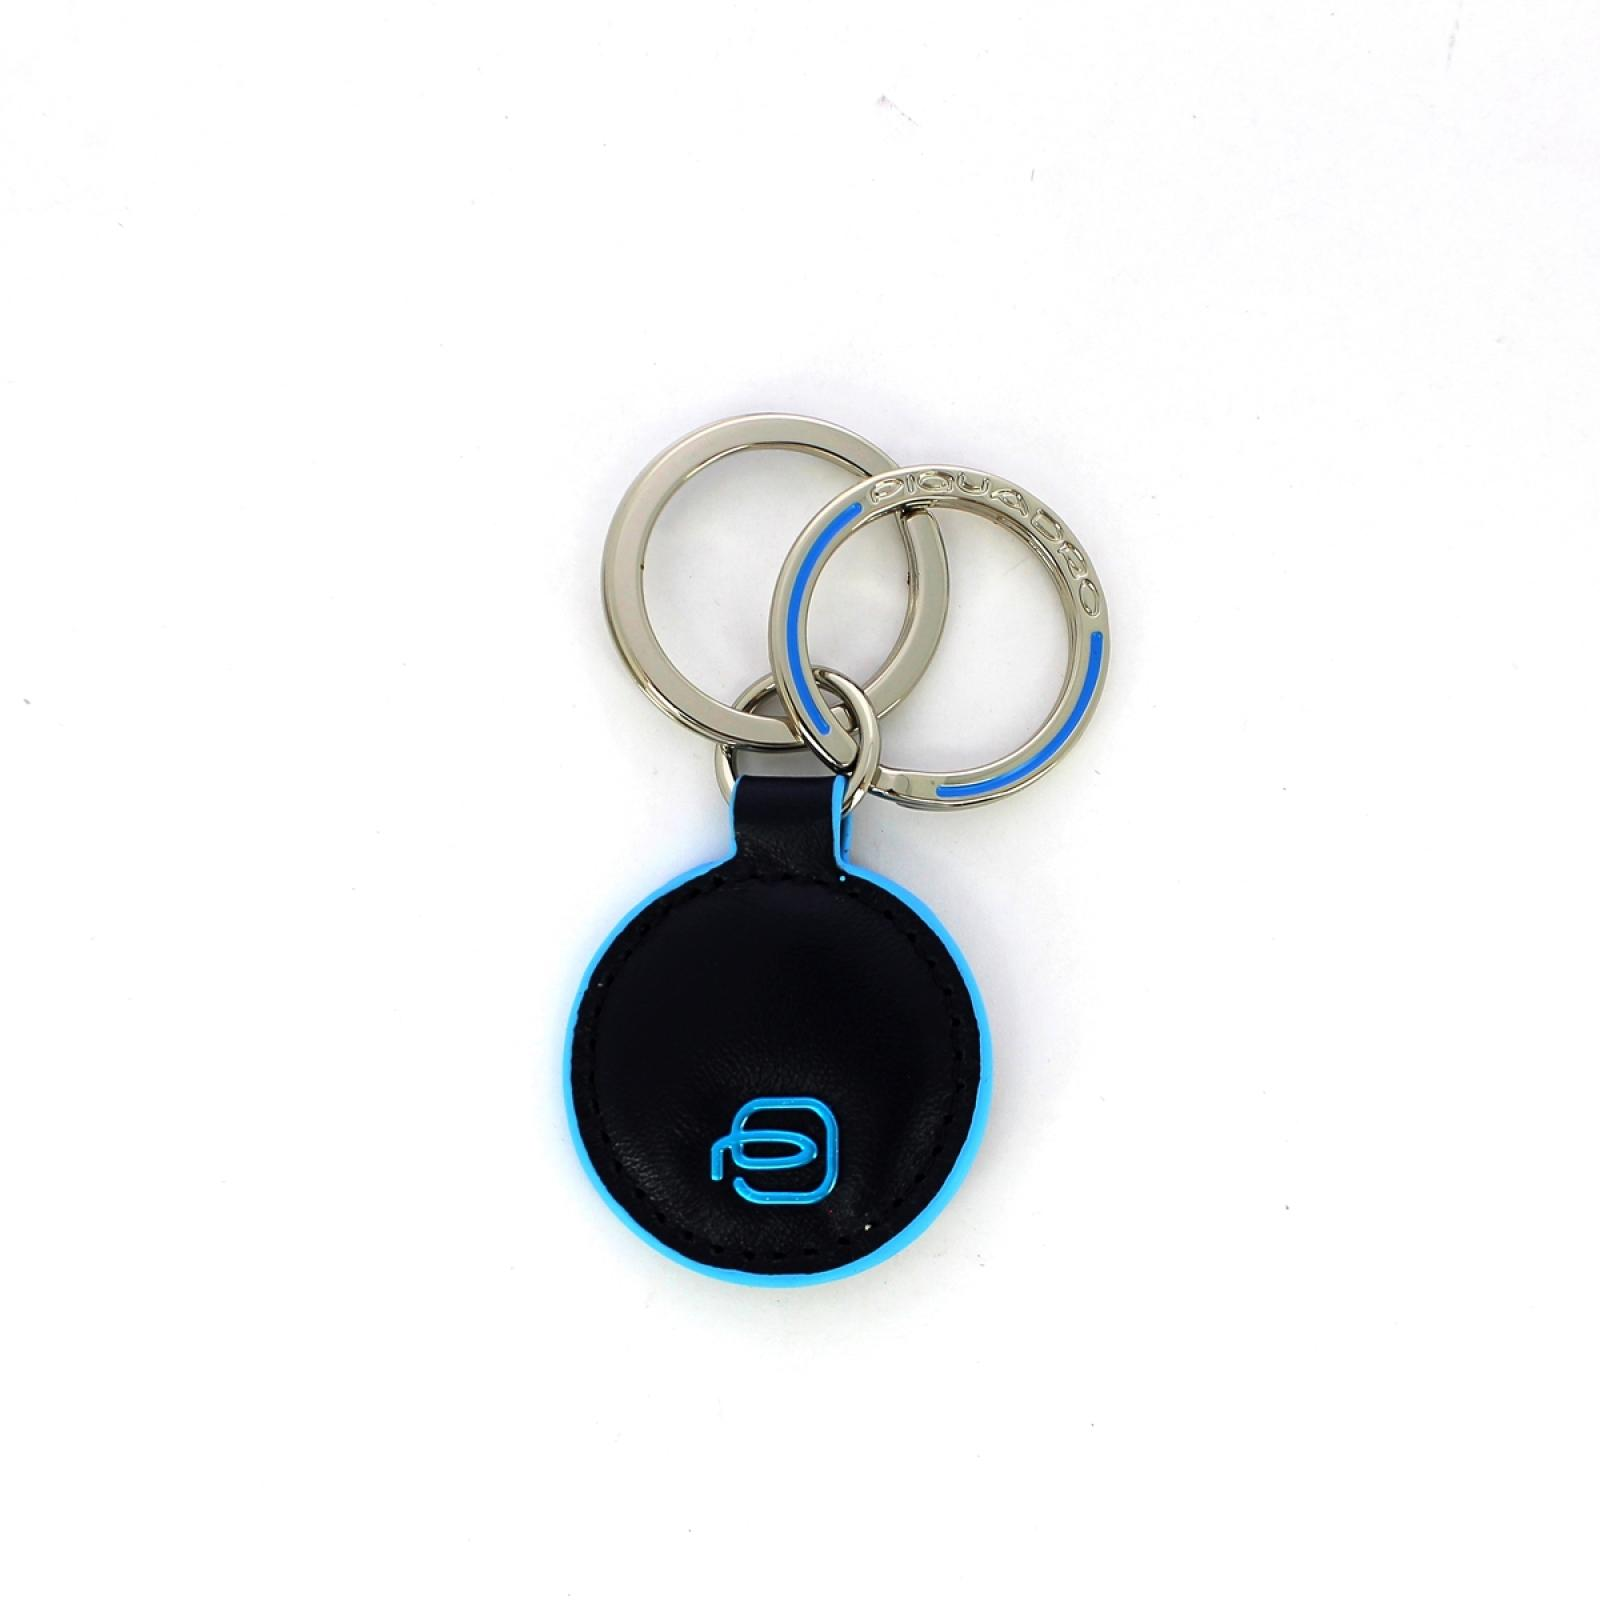 Round double ring keyholder Blue Square